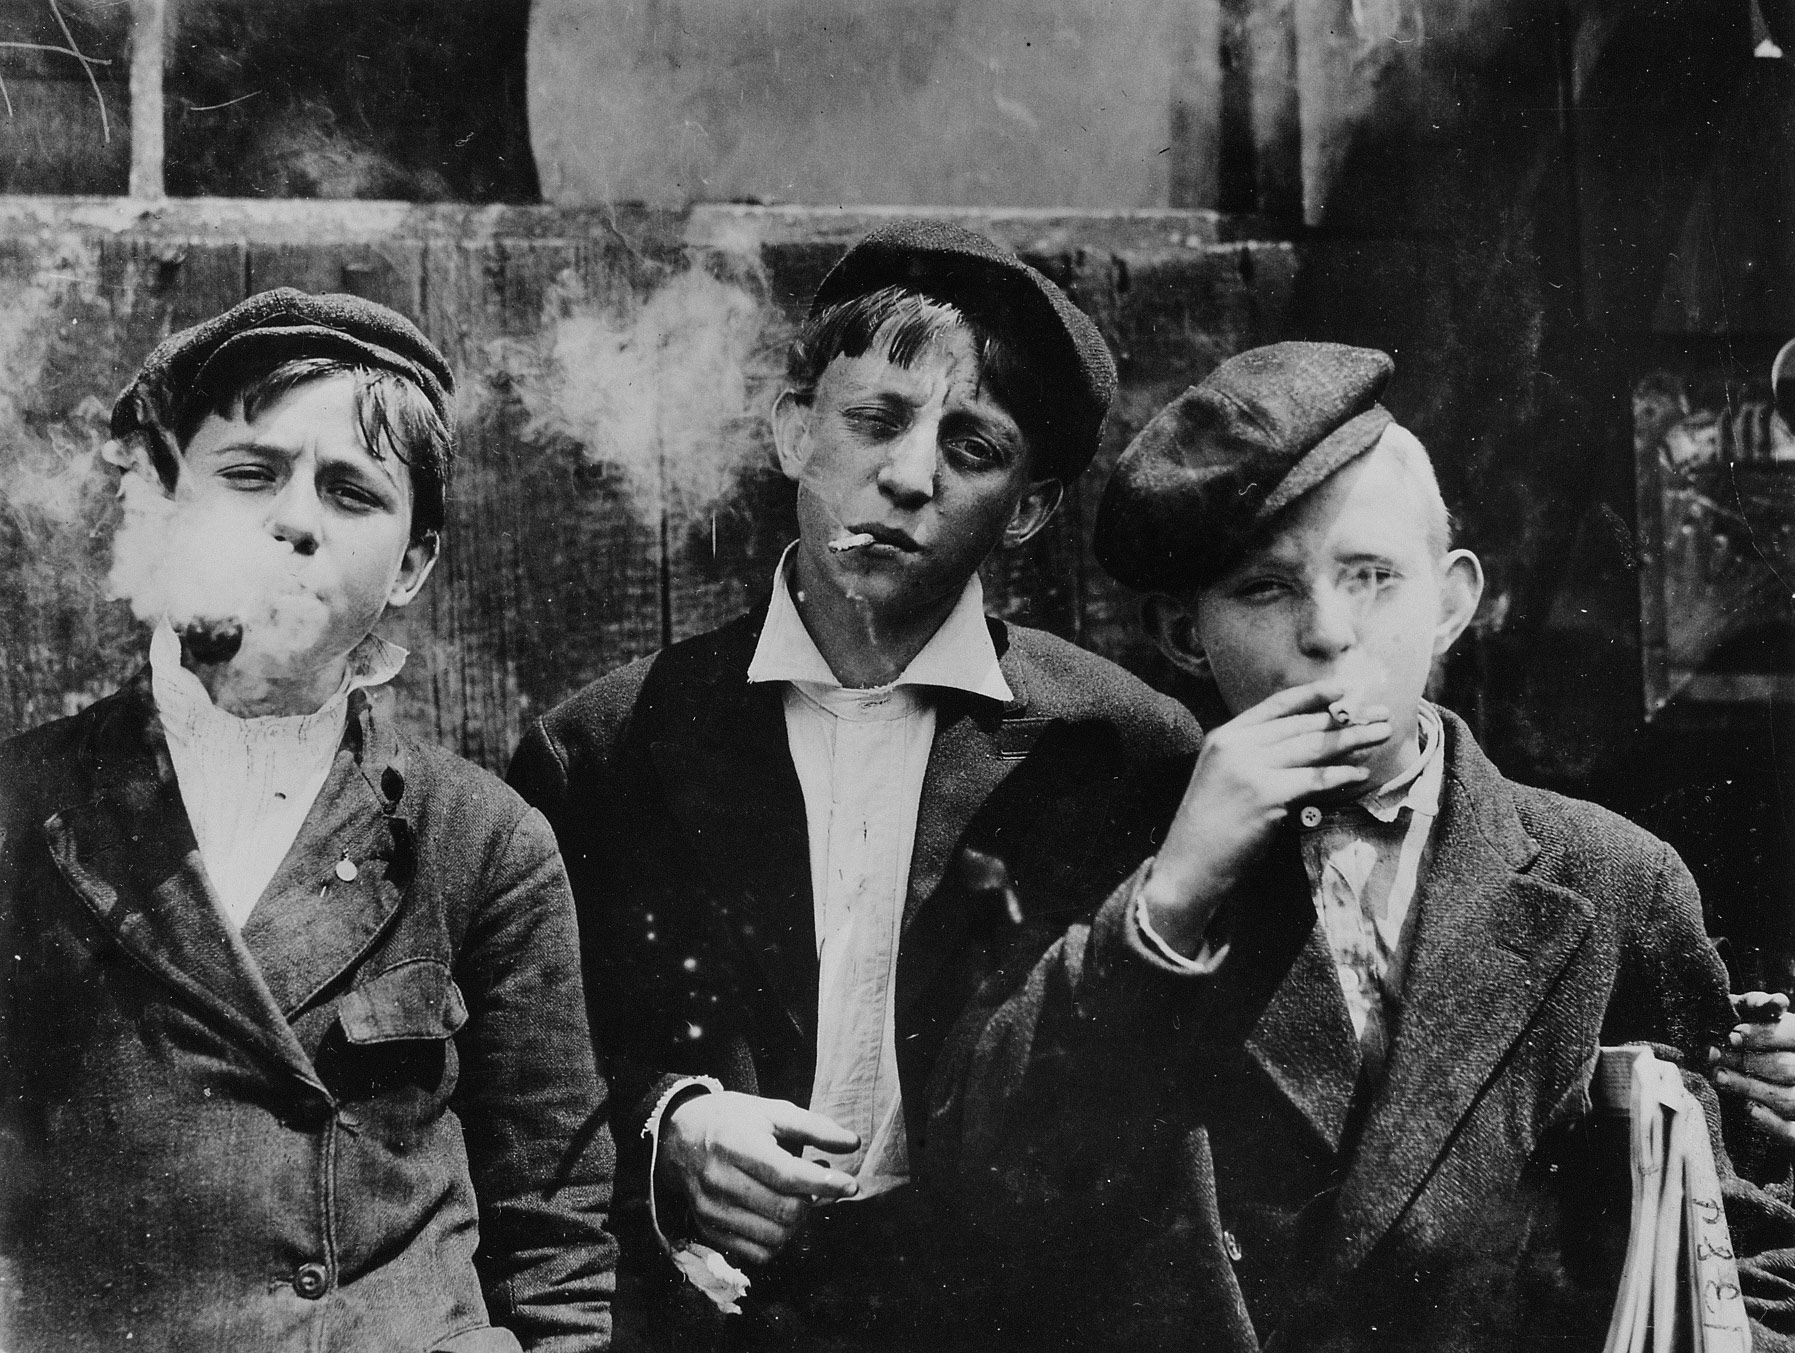 11:00 A.M. Monday, May 9th, 1910. Newsies at Skeeters Branch, Jefferson near Franklin. They were all smoking. Location: St. Louis, Missouri.